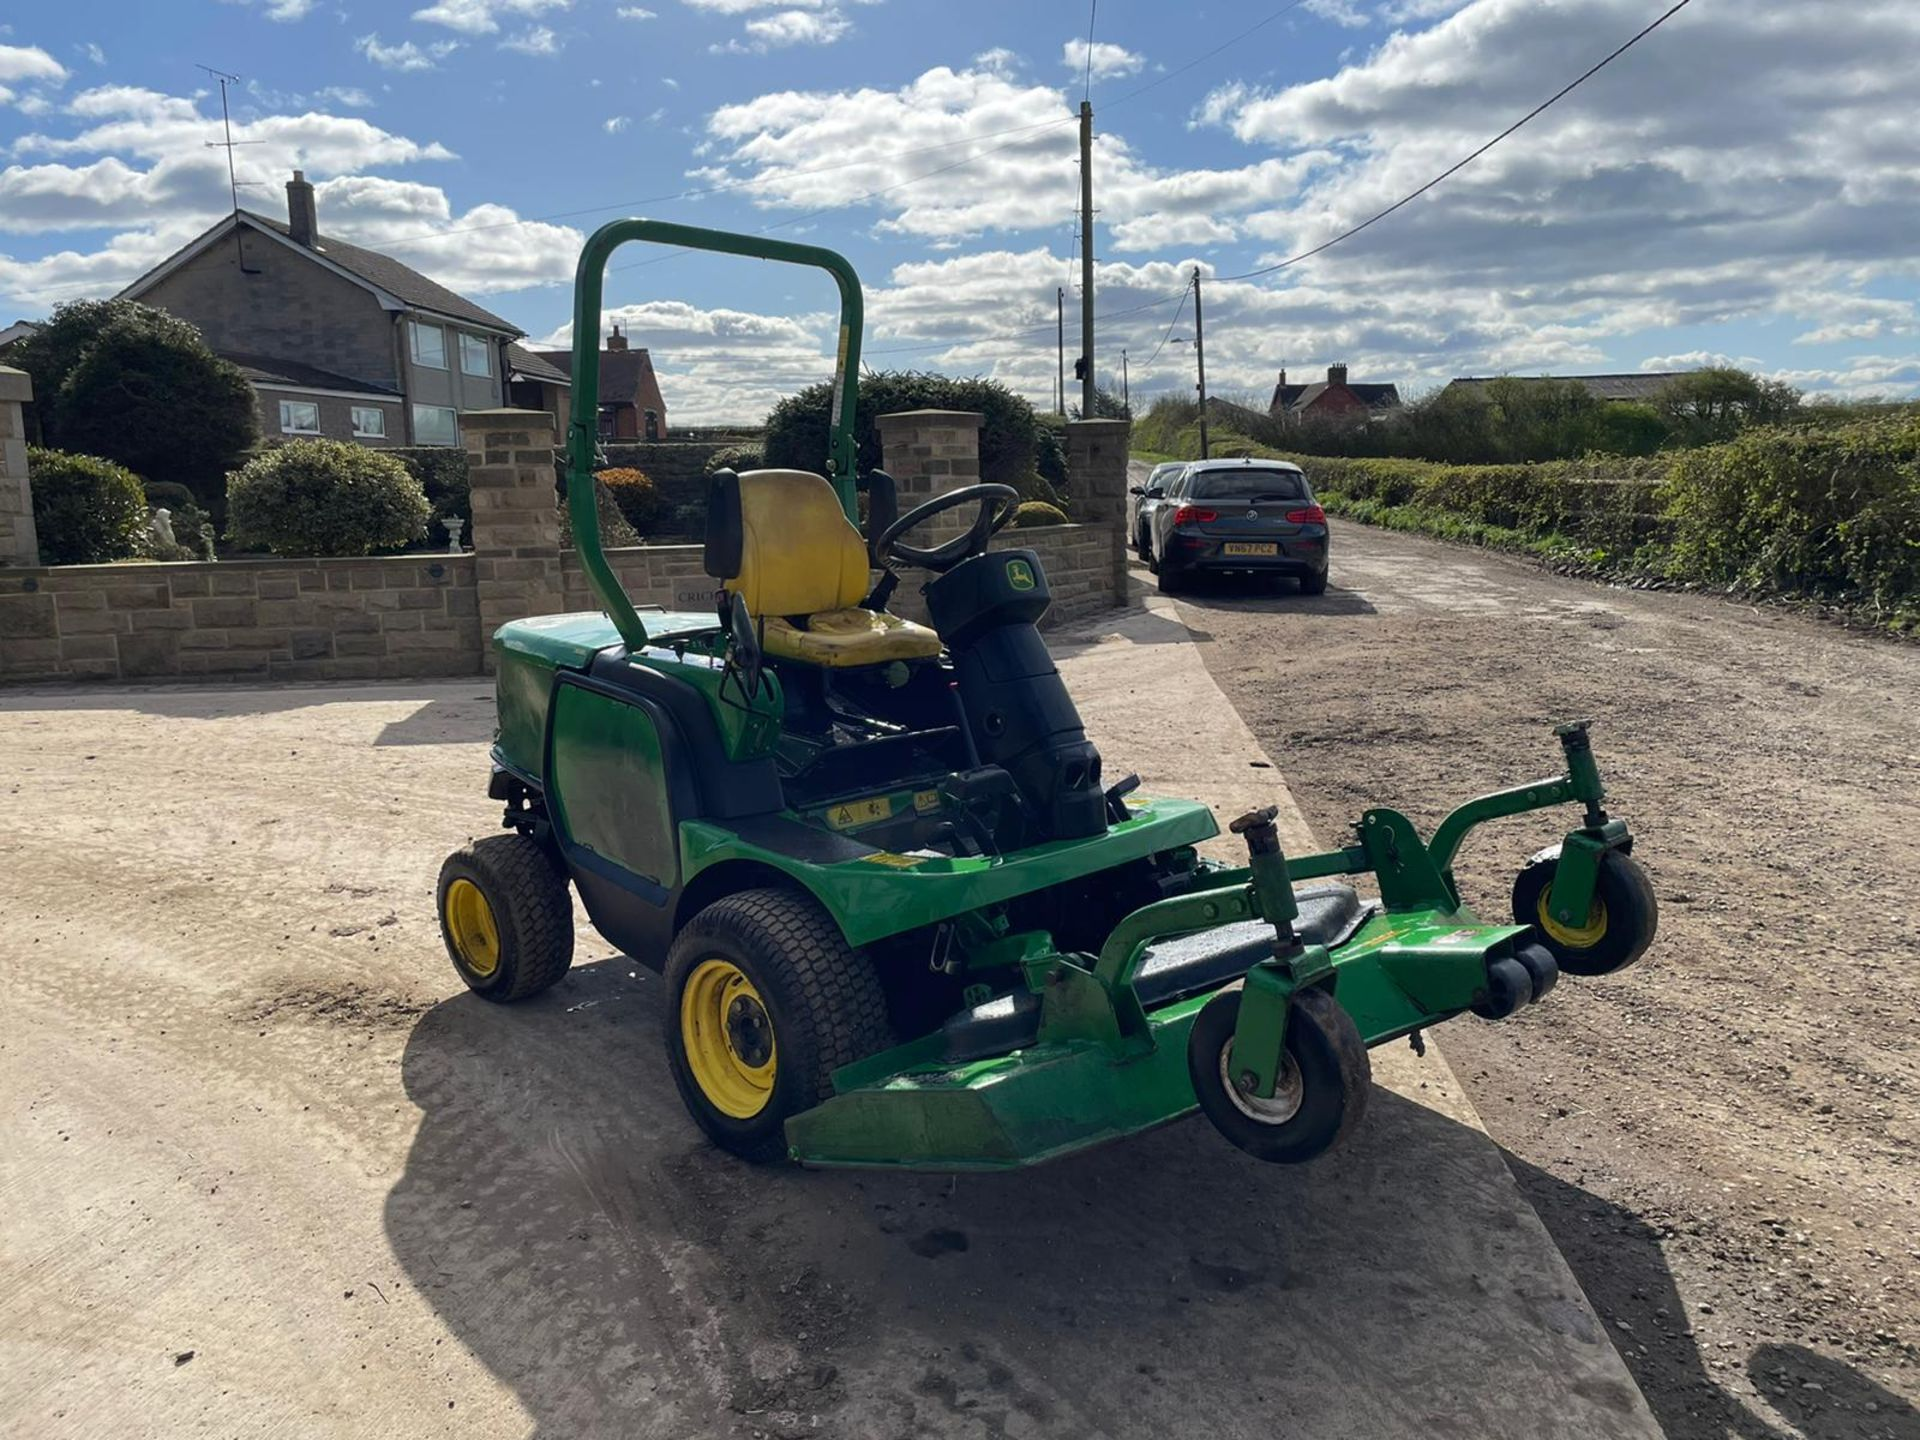 JOHN DEERE 1445 RIDE ON MOWER, RUNS DRIVES AND CUTS, IN USED BUT GOOD CONDITION *NO VAT* - Image 2 of 9